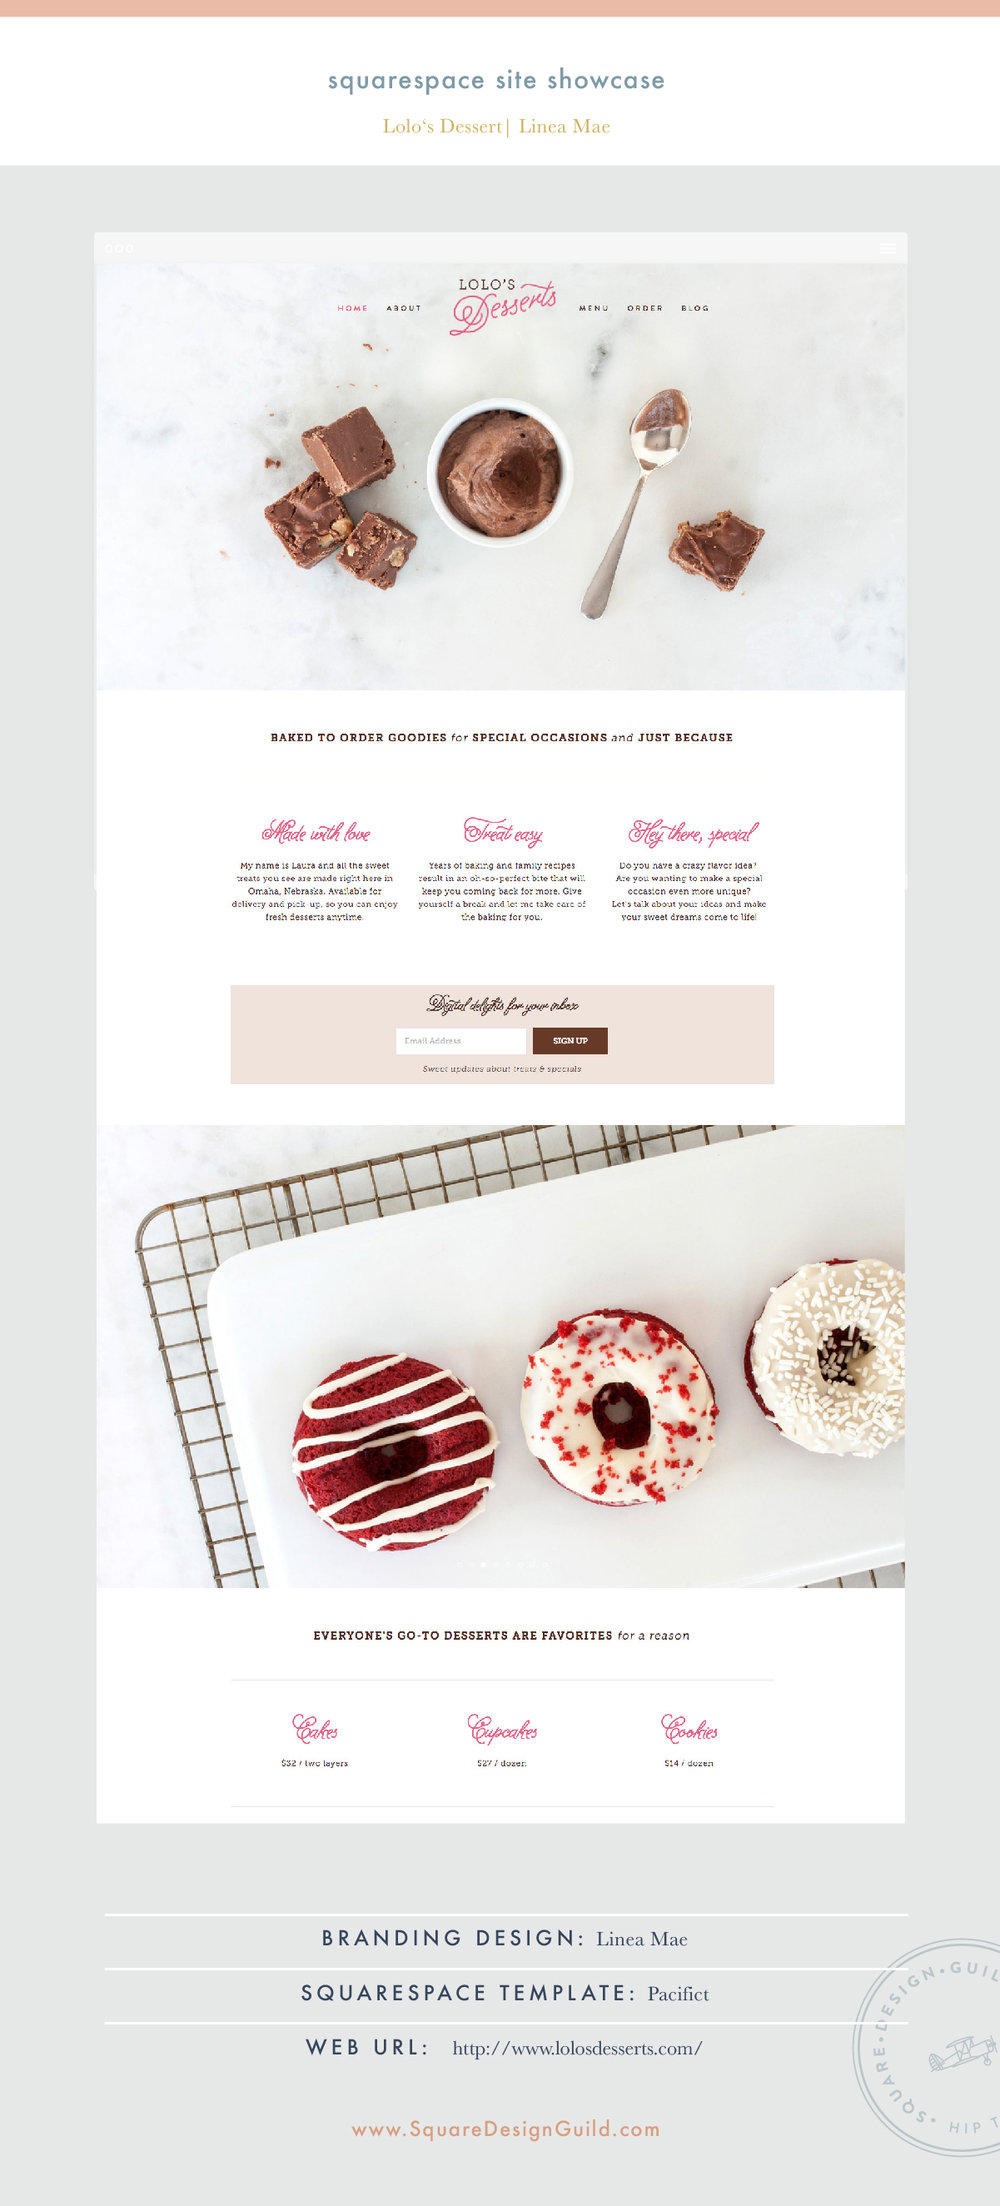 Square Design Guild | Site Showcase | Lolo's Desserts by Linea Mae | Pacific Template